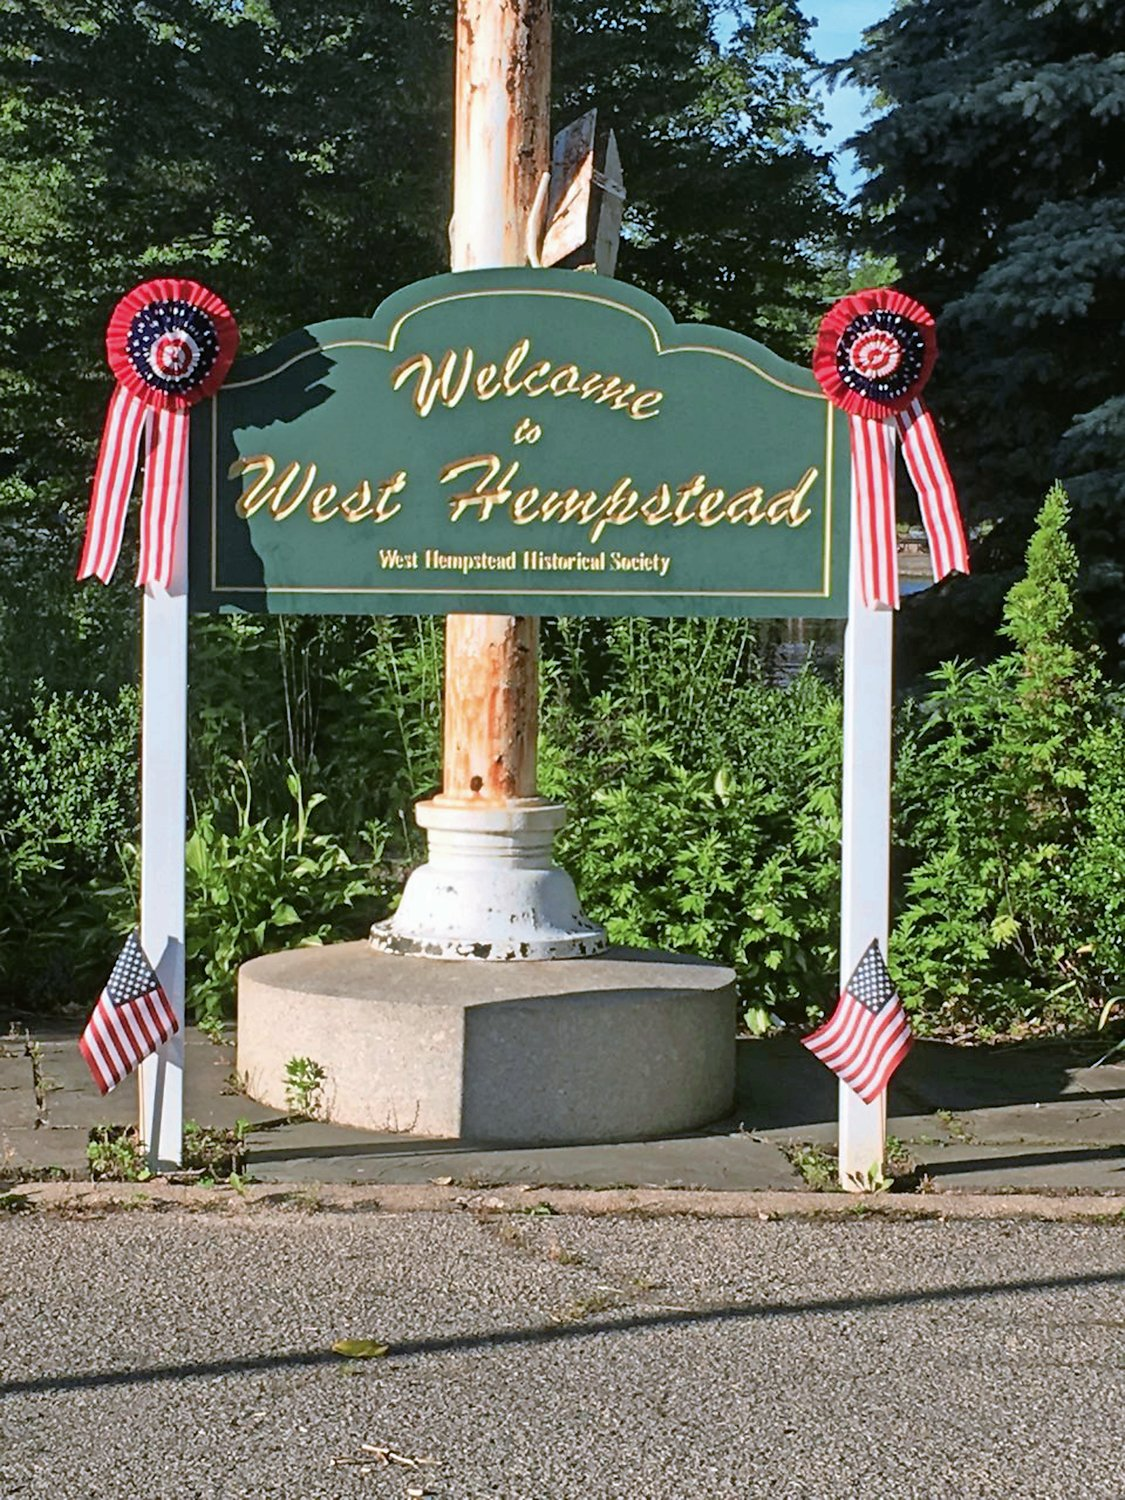 The group also placed flags at the greeting sign.